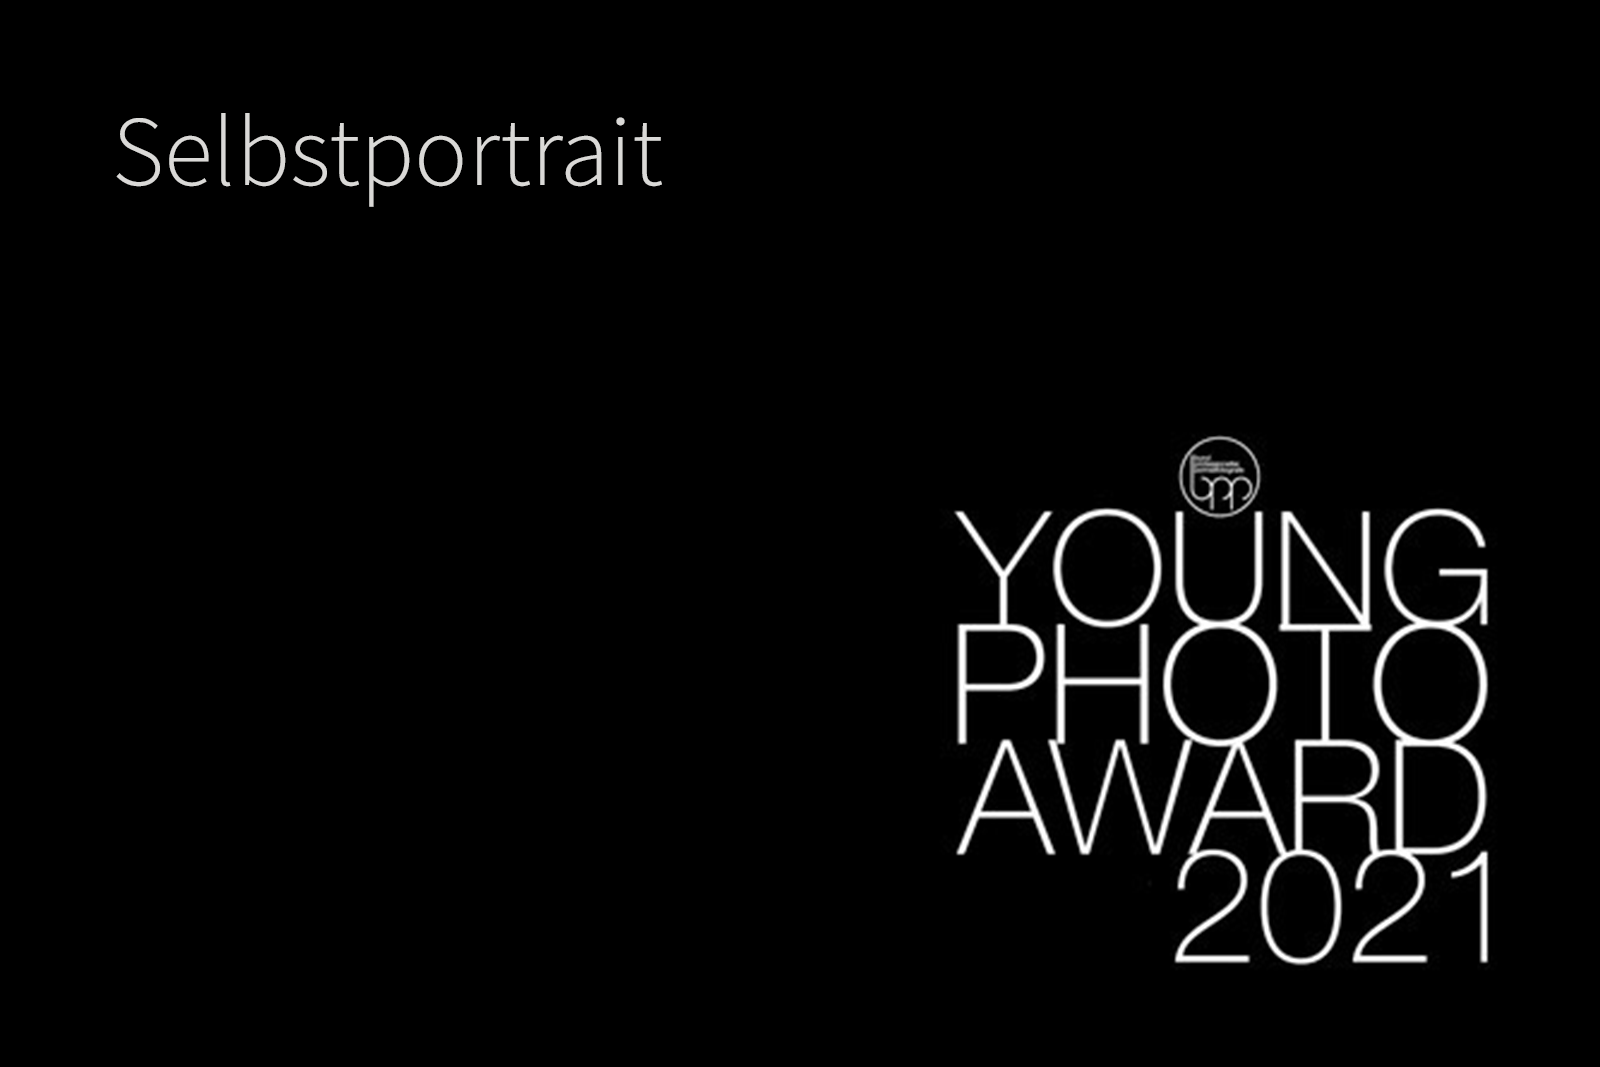 Young Photo Award 2021